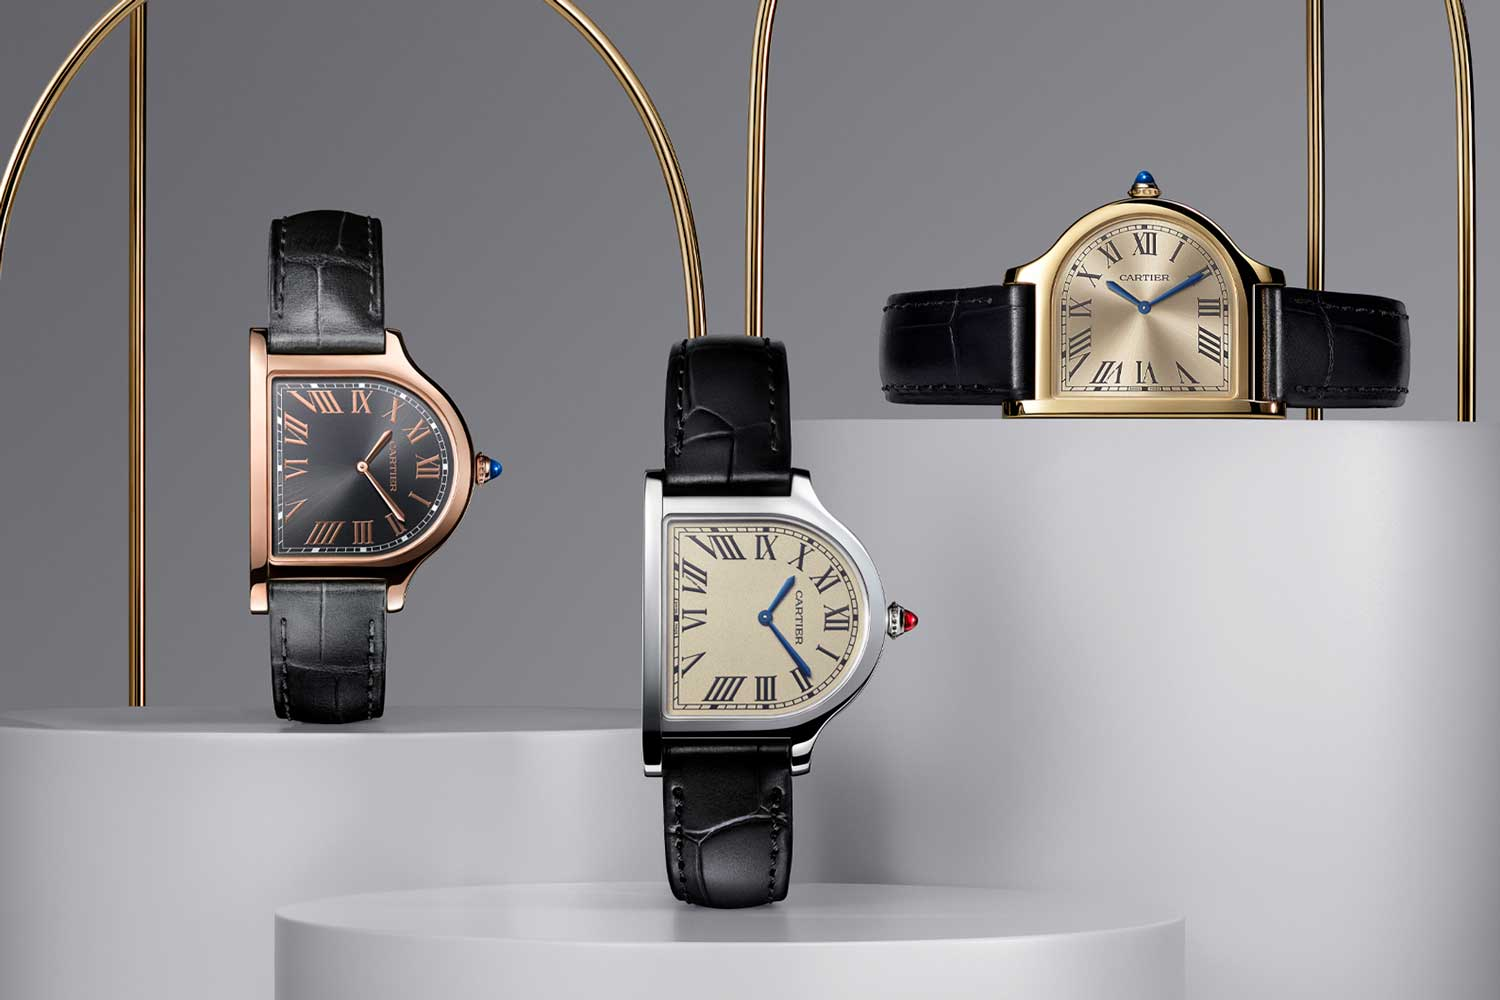 Powered by the manual winding calibre 1917 MC, the Cloche de Cartier watches promise a power reserve of 38 hours